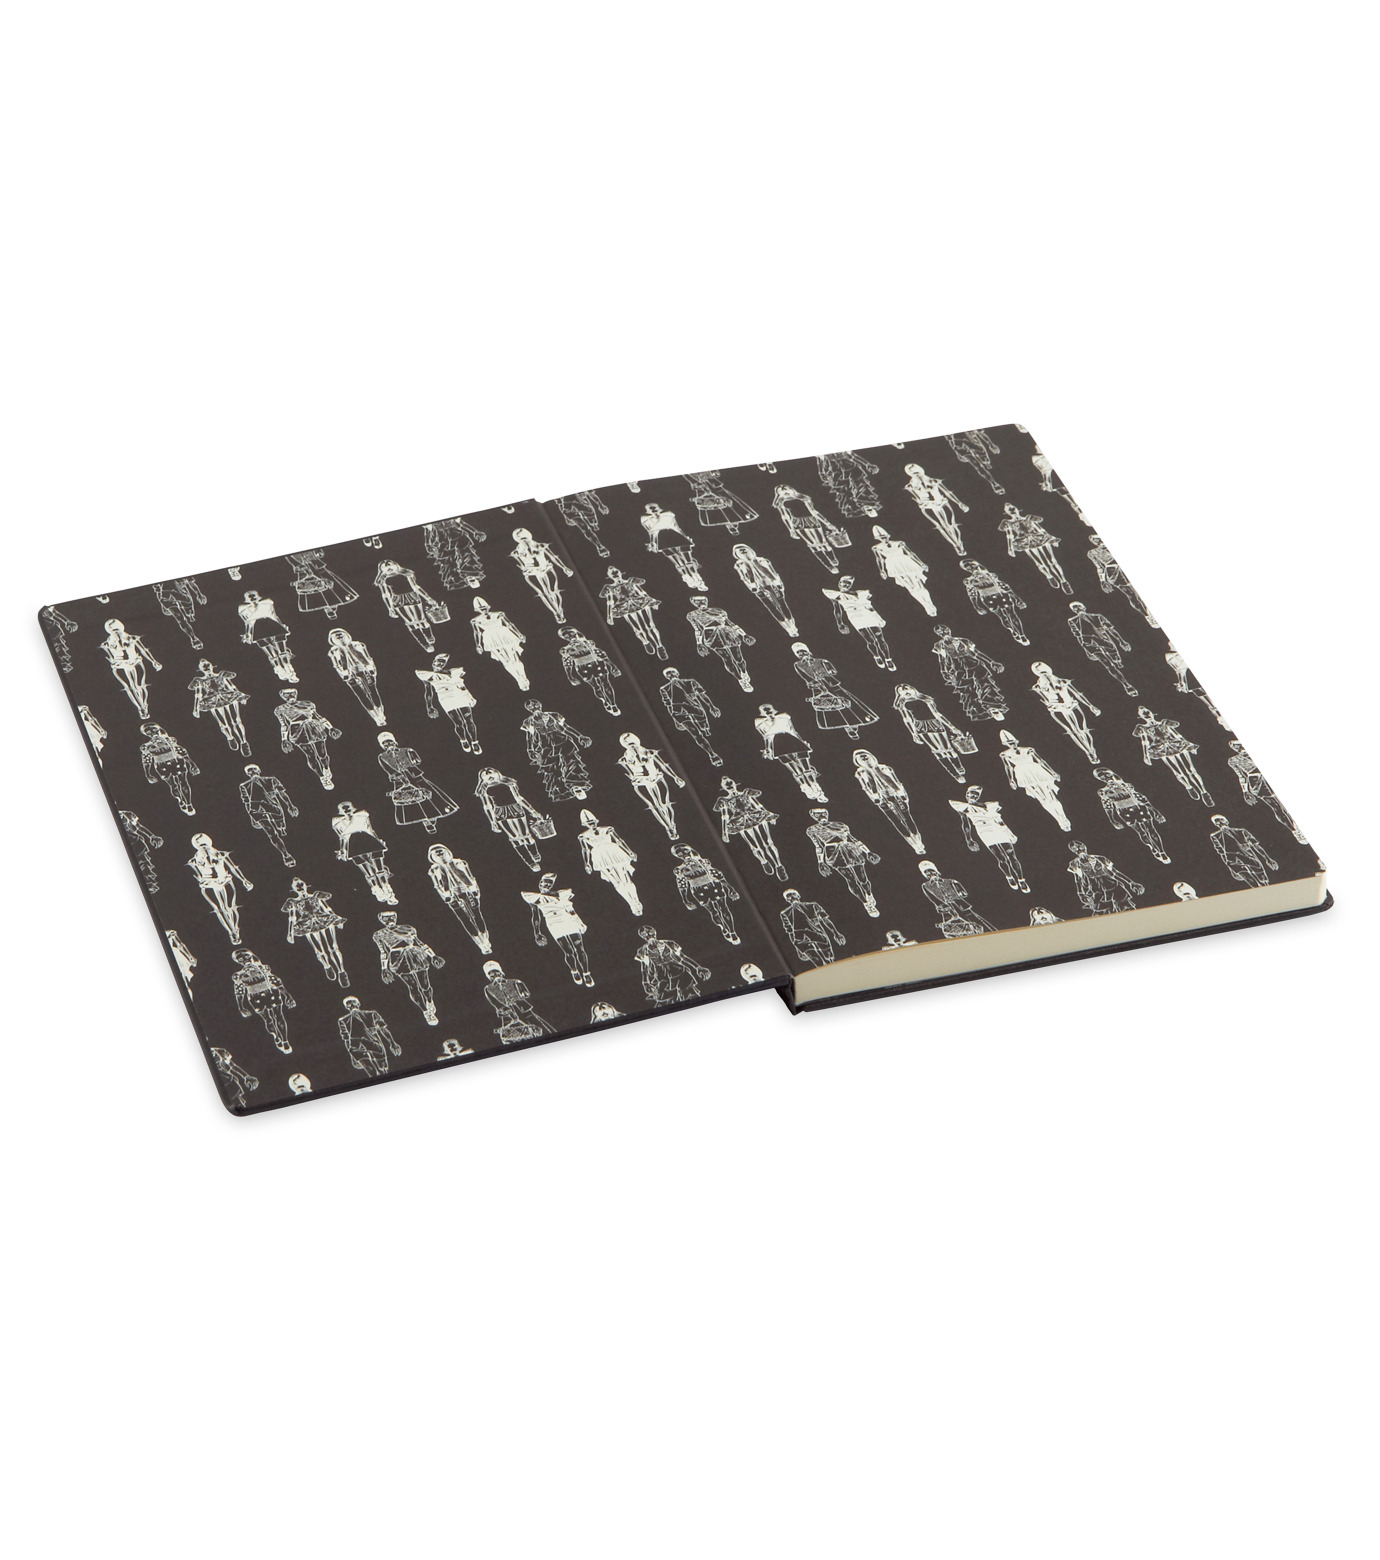 Fashematical(ファシェマティカル)のNote book-NONE(OTHER-GOODS/OTHER-GOODS)-Note-Givenchy 拡大詳細画像4